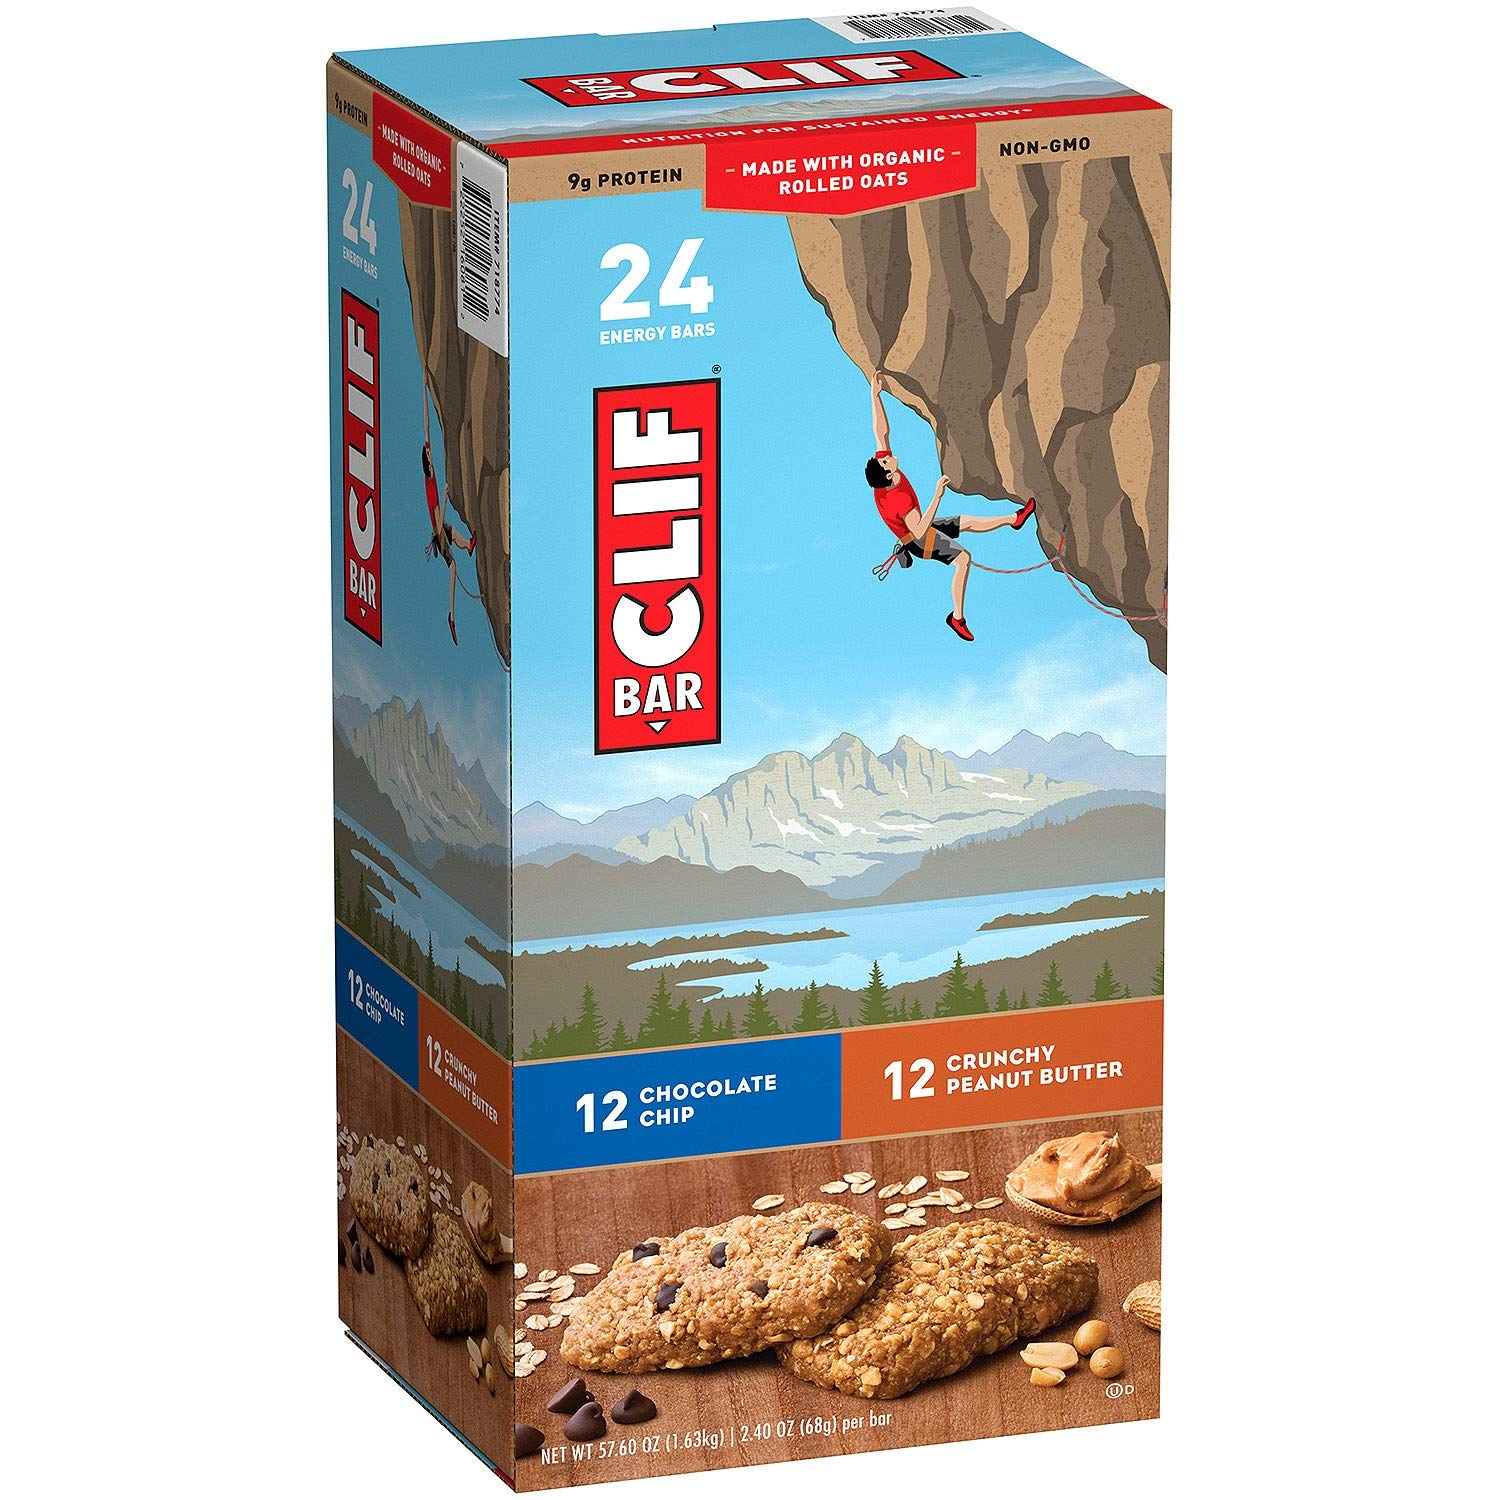 Clif Bar Variety Pack, Chocolate Chip, Crunchy Peanut Butter, 2.4 oz. Nutrition Bars (24 Count)(Pack of 2) by Clif Bar